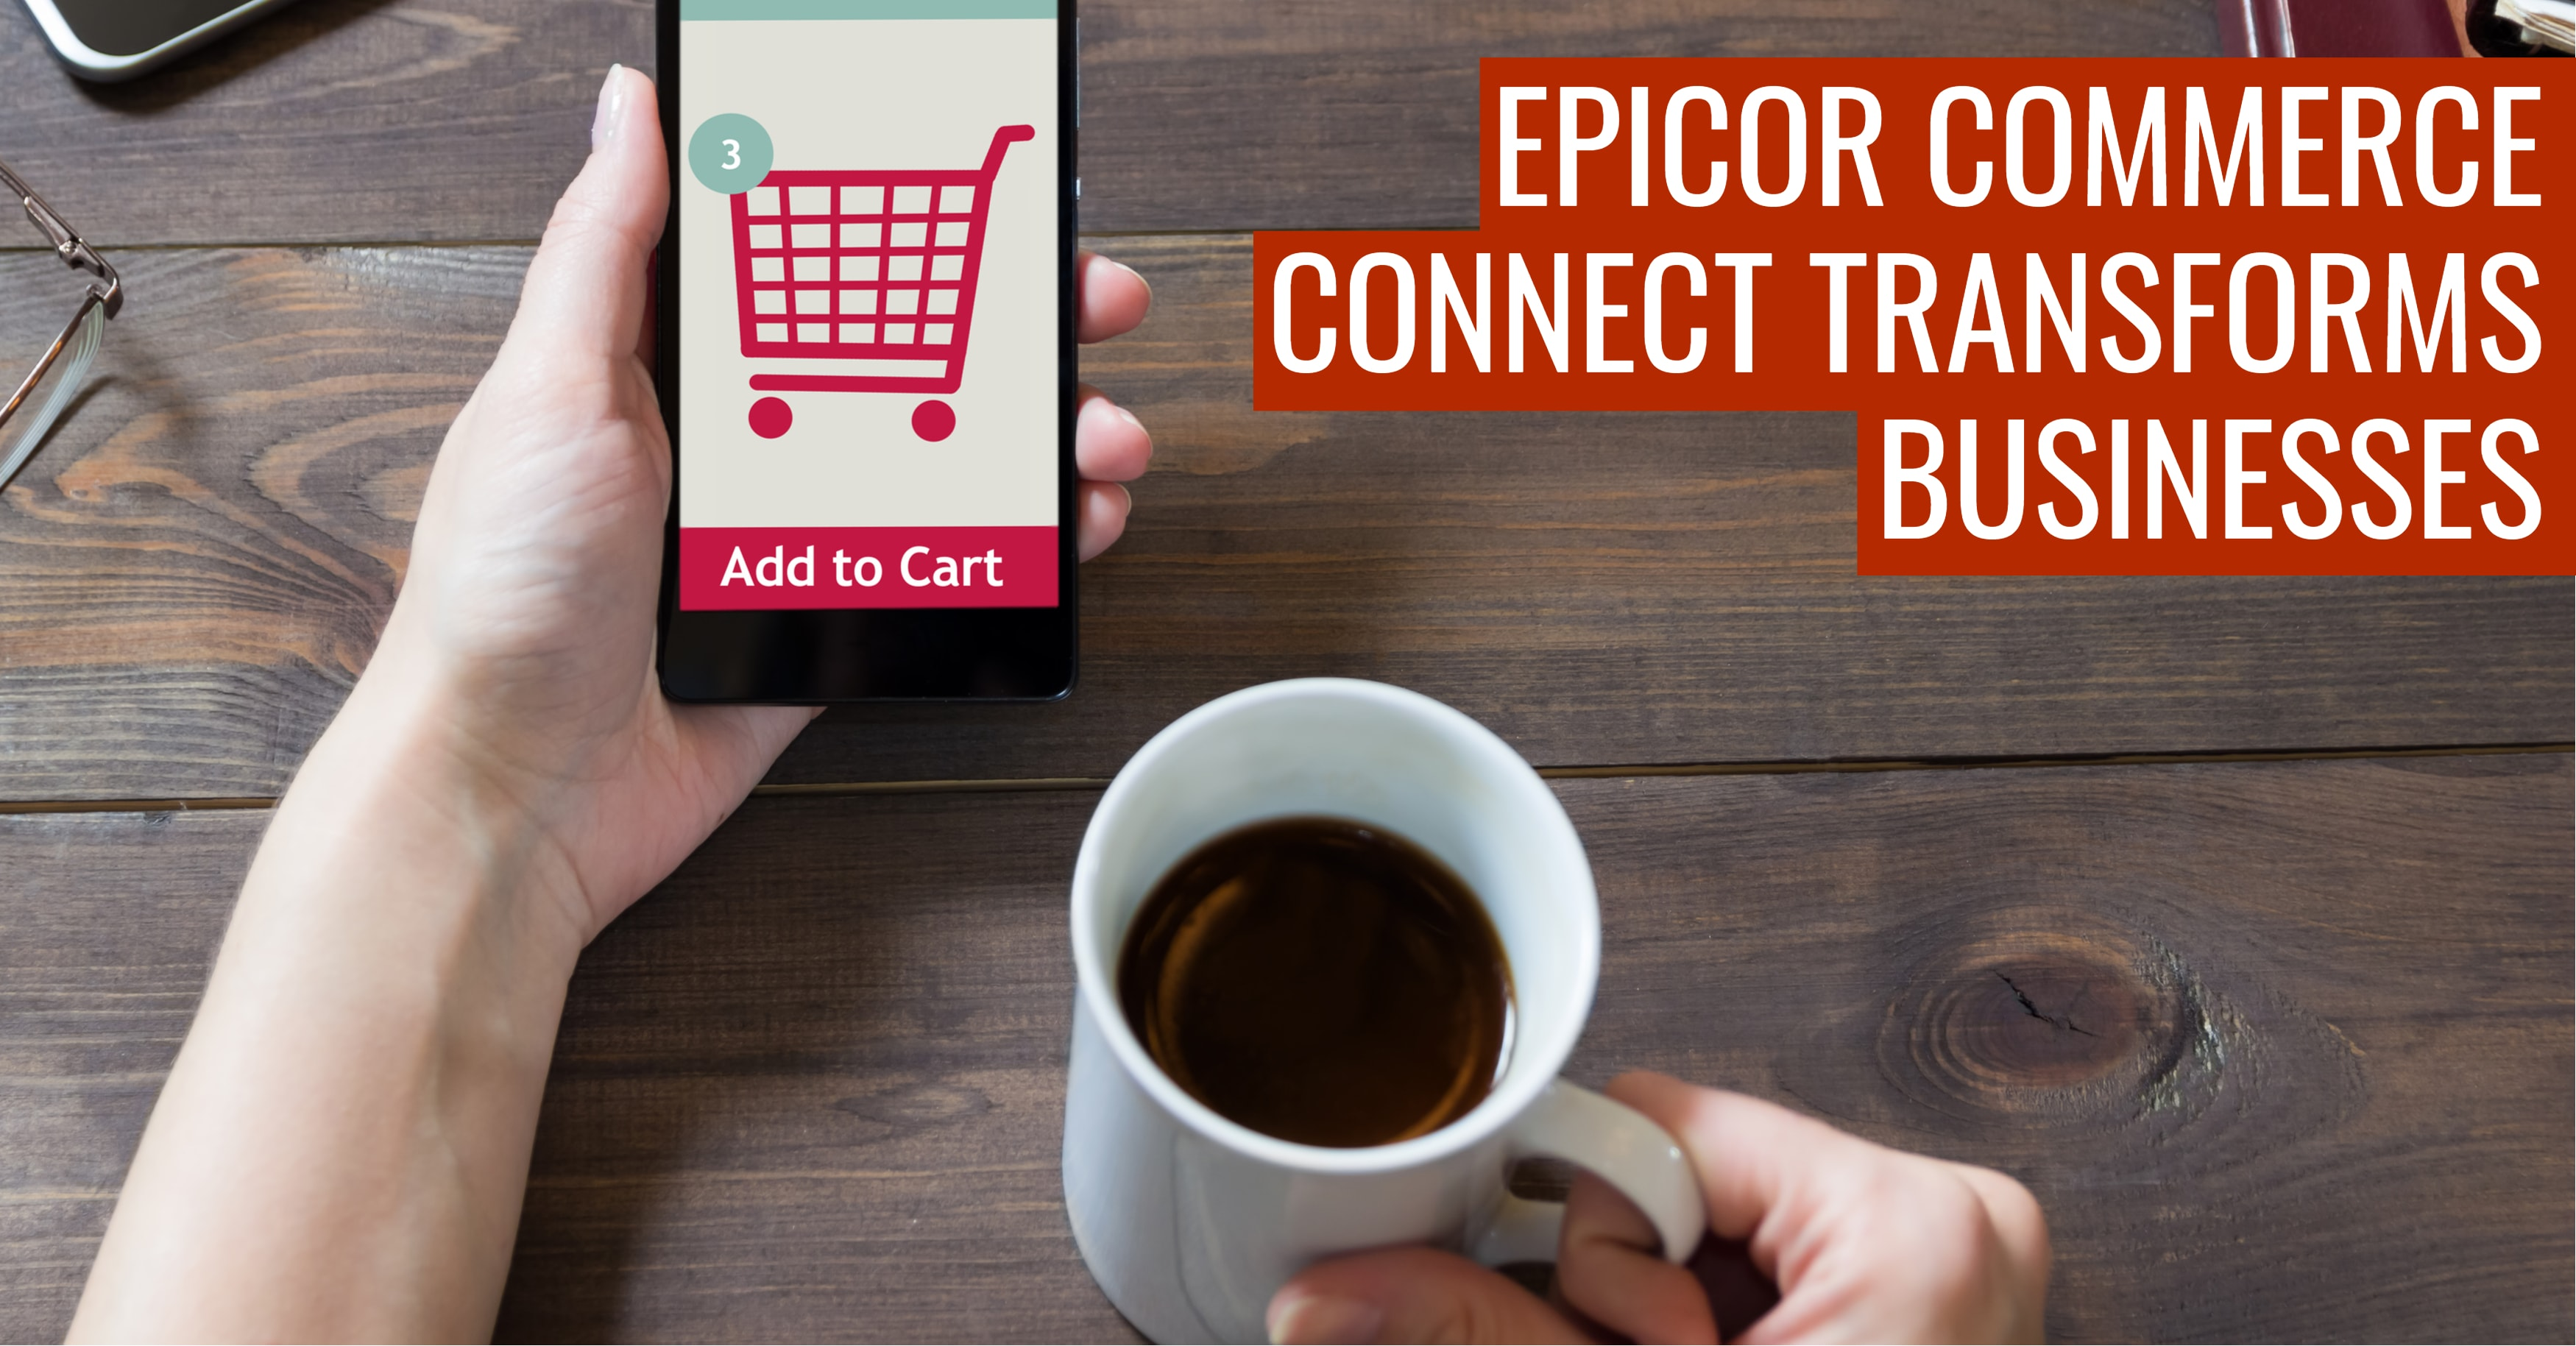 10 Ways Epicor Commerce Connect Transforms Businesses